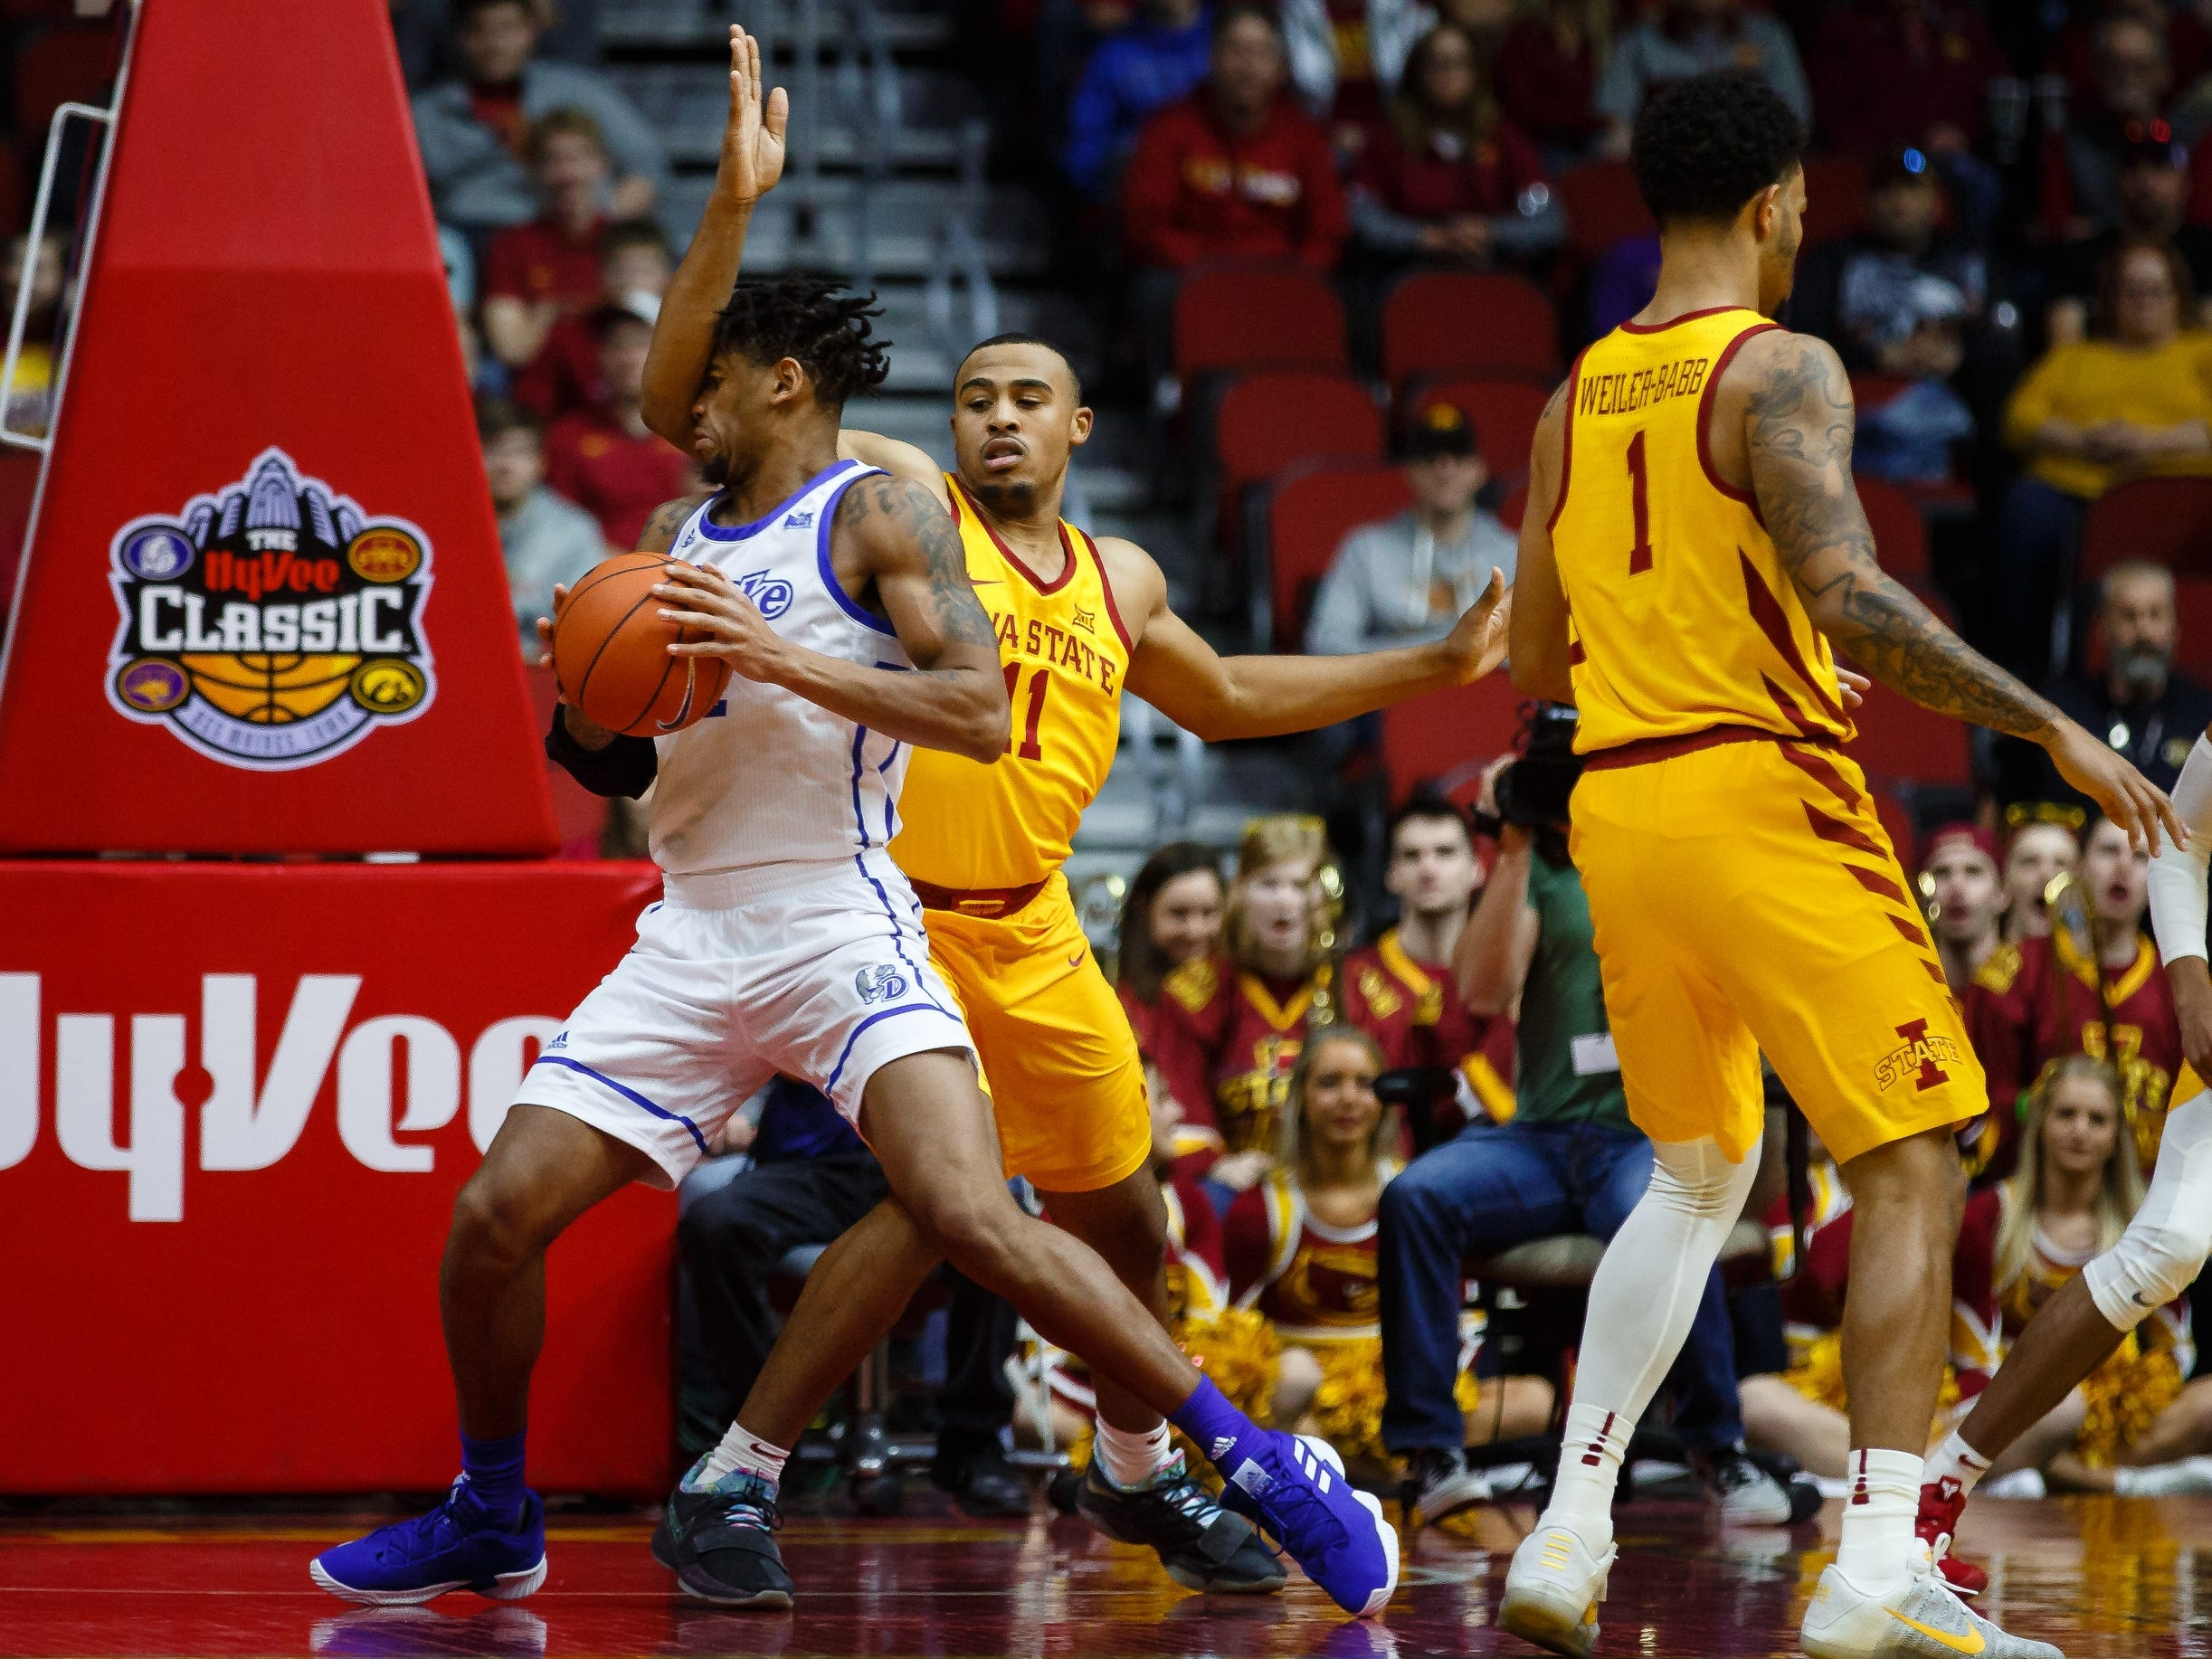 Iowa State's Talen Horton-Tucker tries to block Drake's Tremell Murphy during their game at the Hy-Vee Classic on Saturday, Dec. 15, 2018, in Des Moines. Iowa State takes a 36-32 lead into the half.